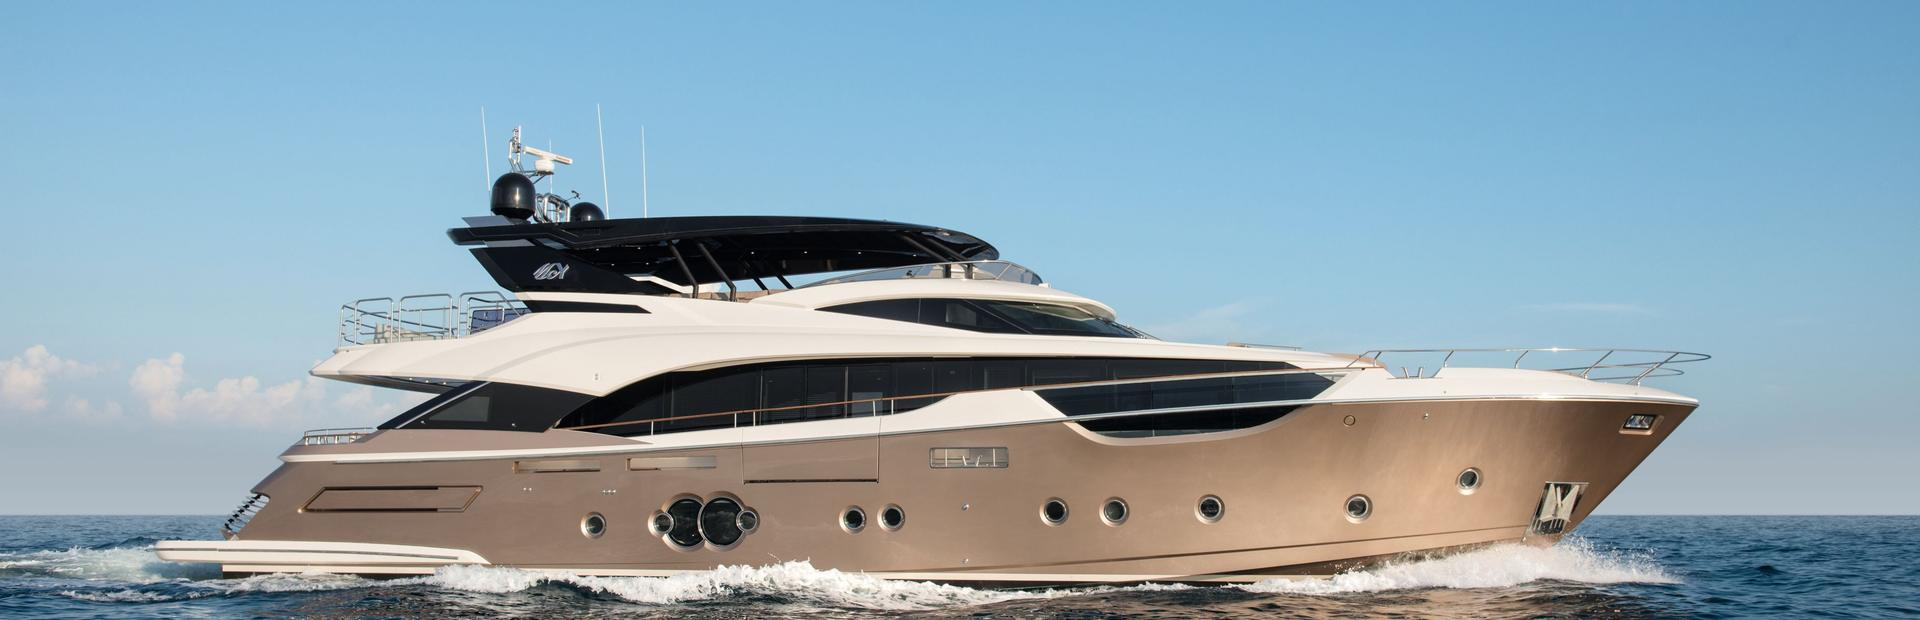 MCY 96 Yacht Charter